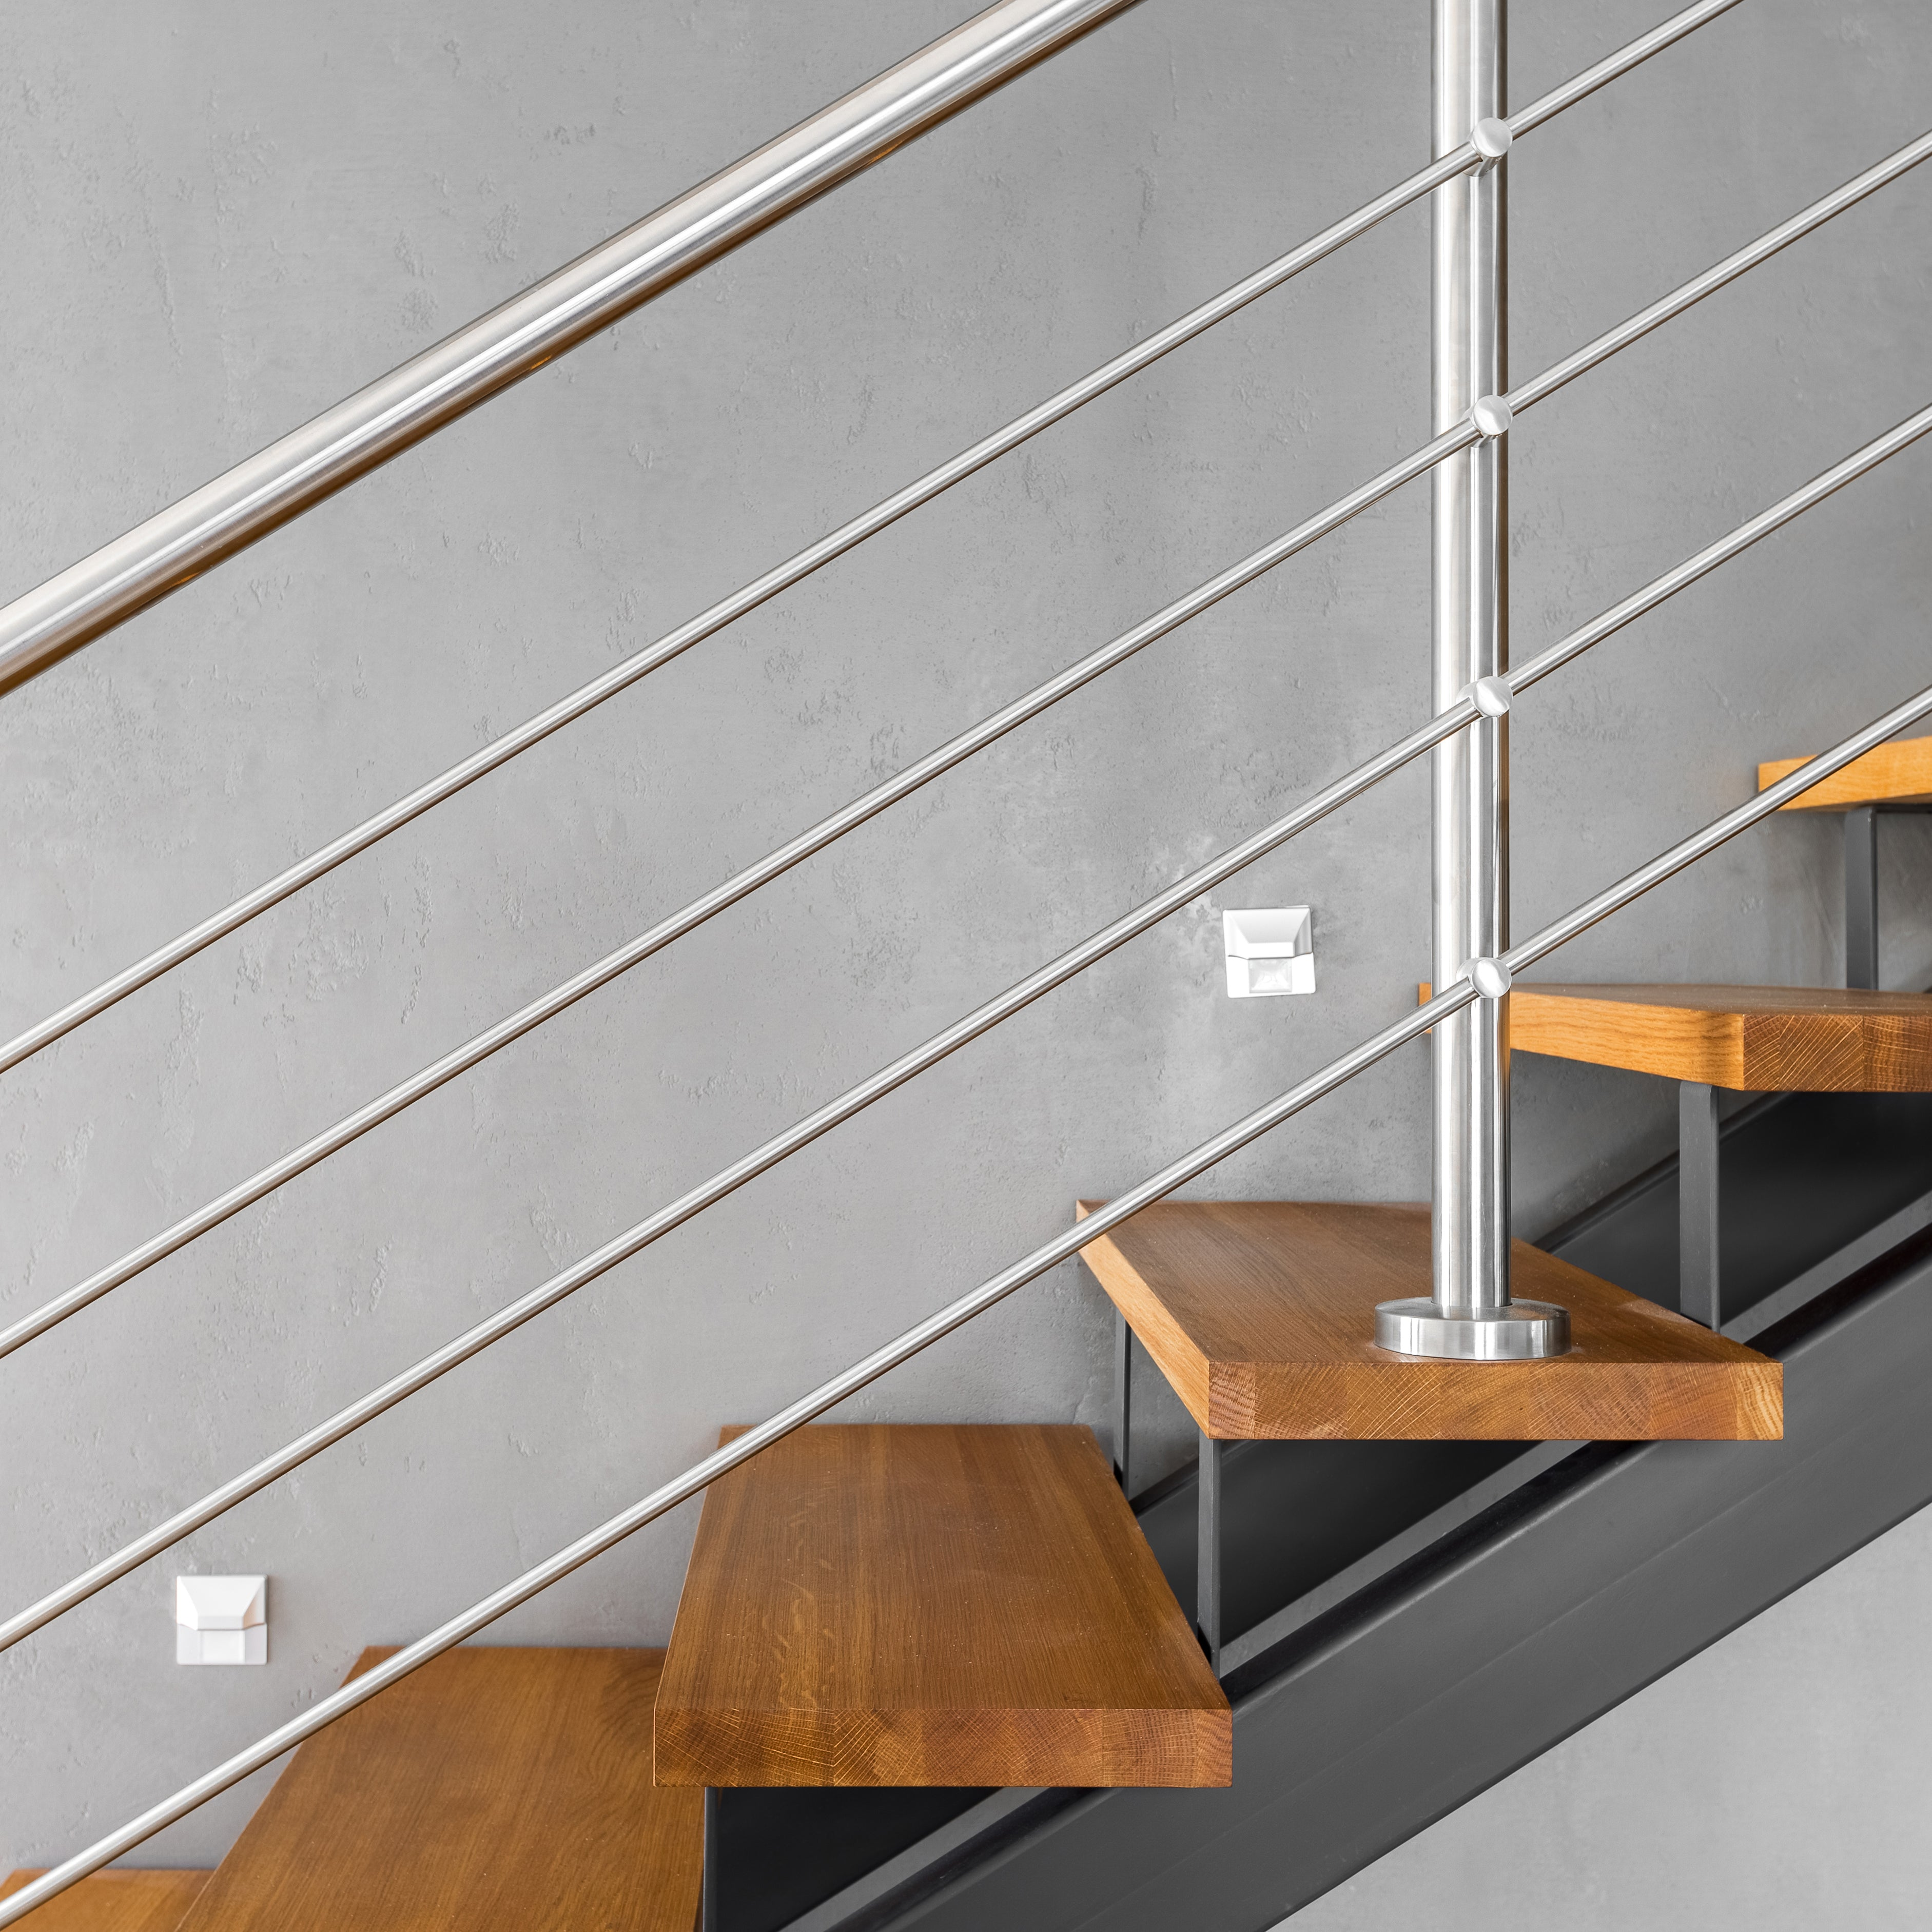 Stair Design Budget And Important Things To Consider: Shop Iron Balusters, Handrail, Treads